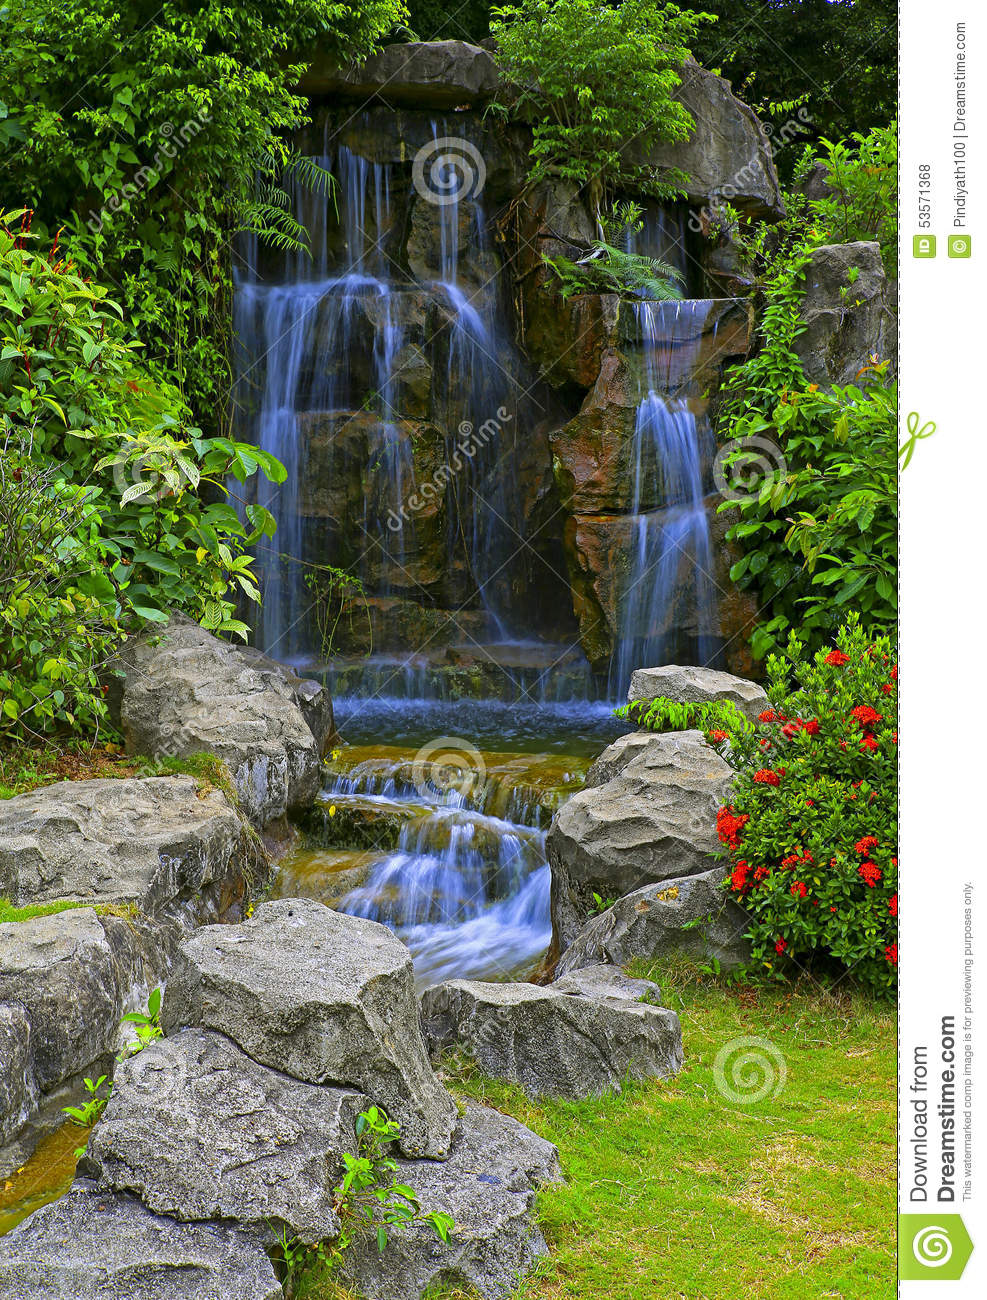 Waterfall in tropical zen garden stock photo image of for Zen garden waterfall